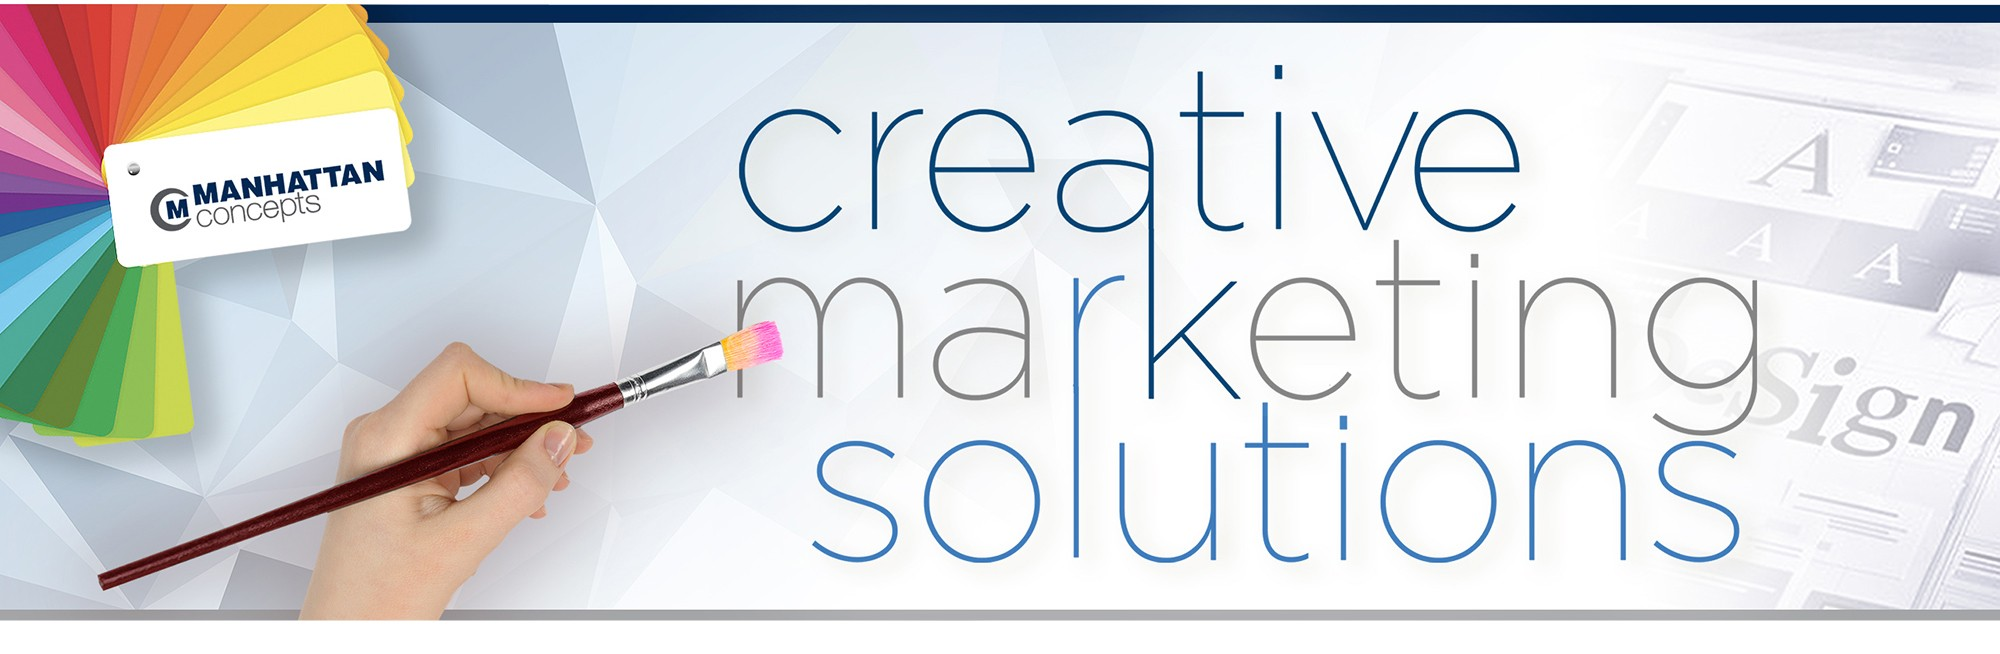 Creative Marketing Solutions